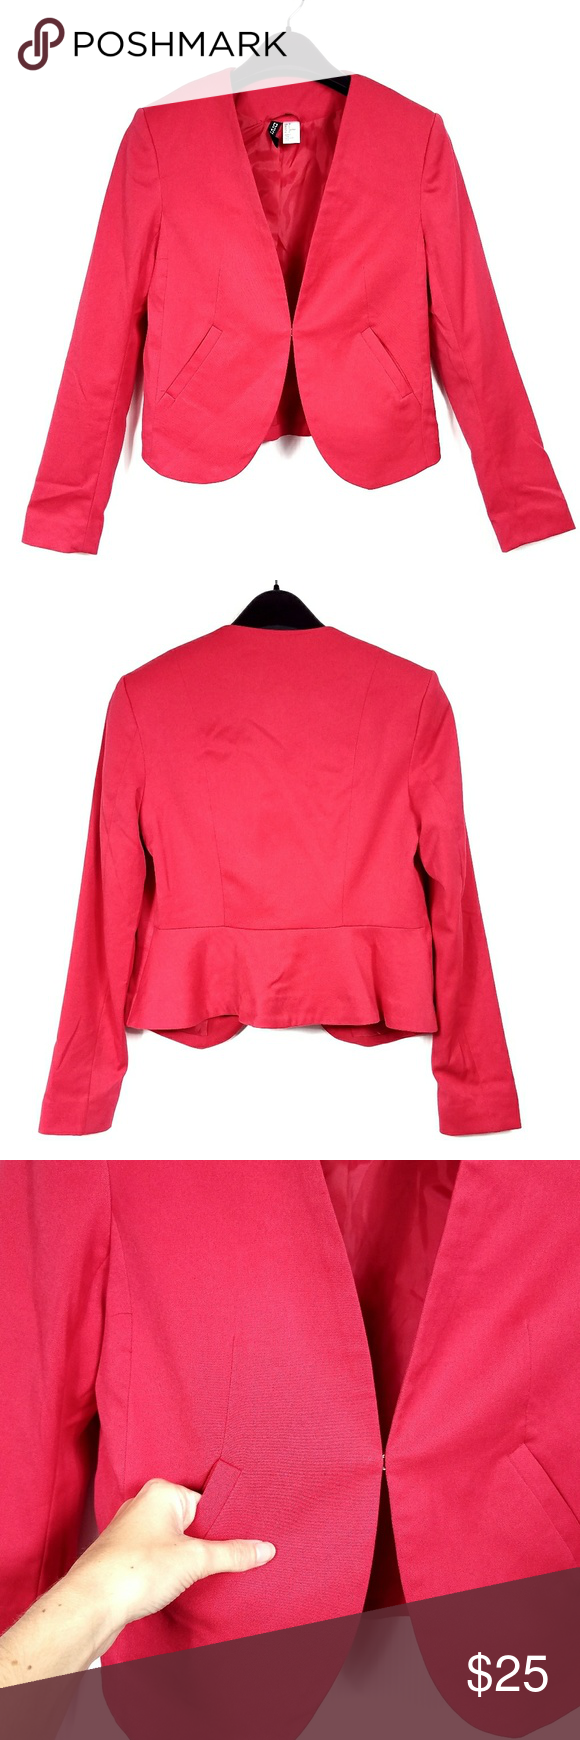 071772696b17 H amp M Divided Red Cropped Jacket H amp M Divided Red Cropped Jacket Size 4